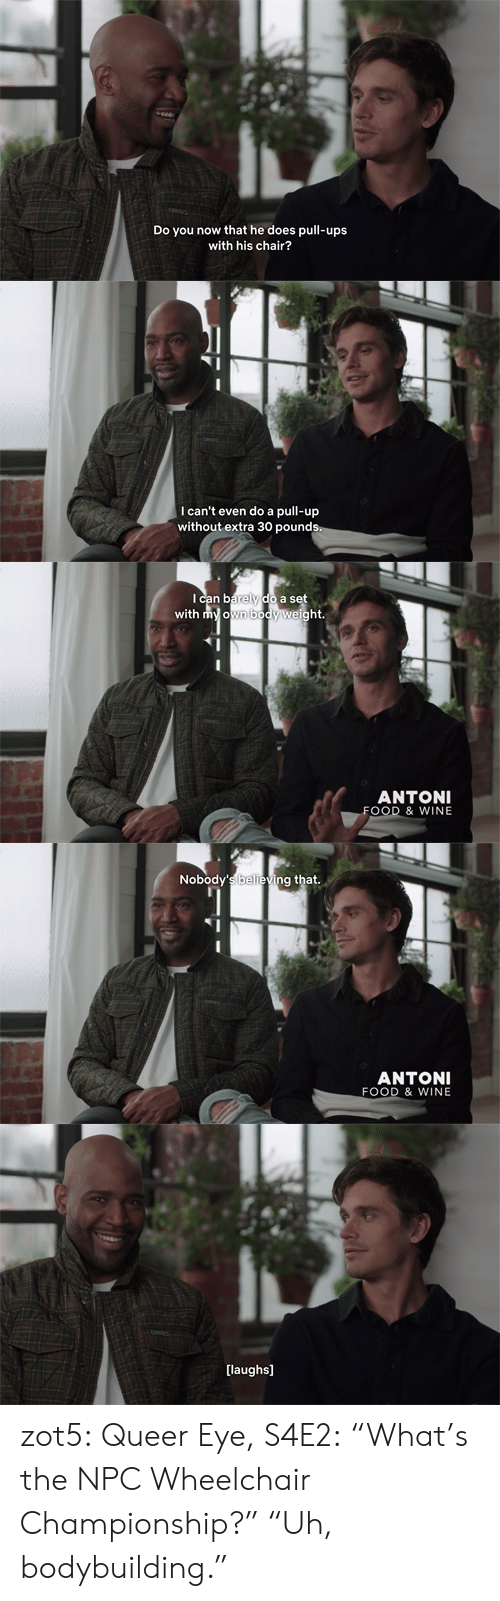 "Bodybuilding: Do y  now that he does pull-ups  with his chair?   I can't even do a pull-up  without extra 30 pounds   Ican barely do a set  with my own body weight.  ANTONI  FOOD & WINE   Nobody's believing that.  ANTONI  FOOD & WINE   [laughs] zot5:  Queer Eye, S4E2: ""What's the NPC Wheelchair Championship?"" ""Uh, bodybuilding."""